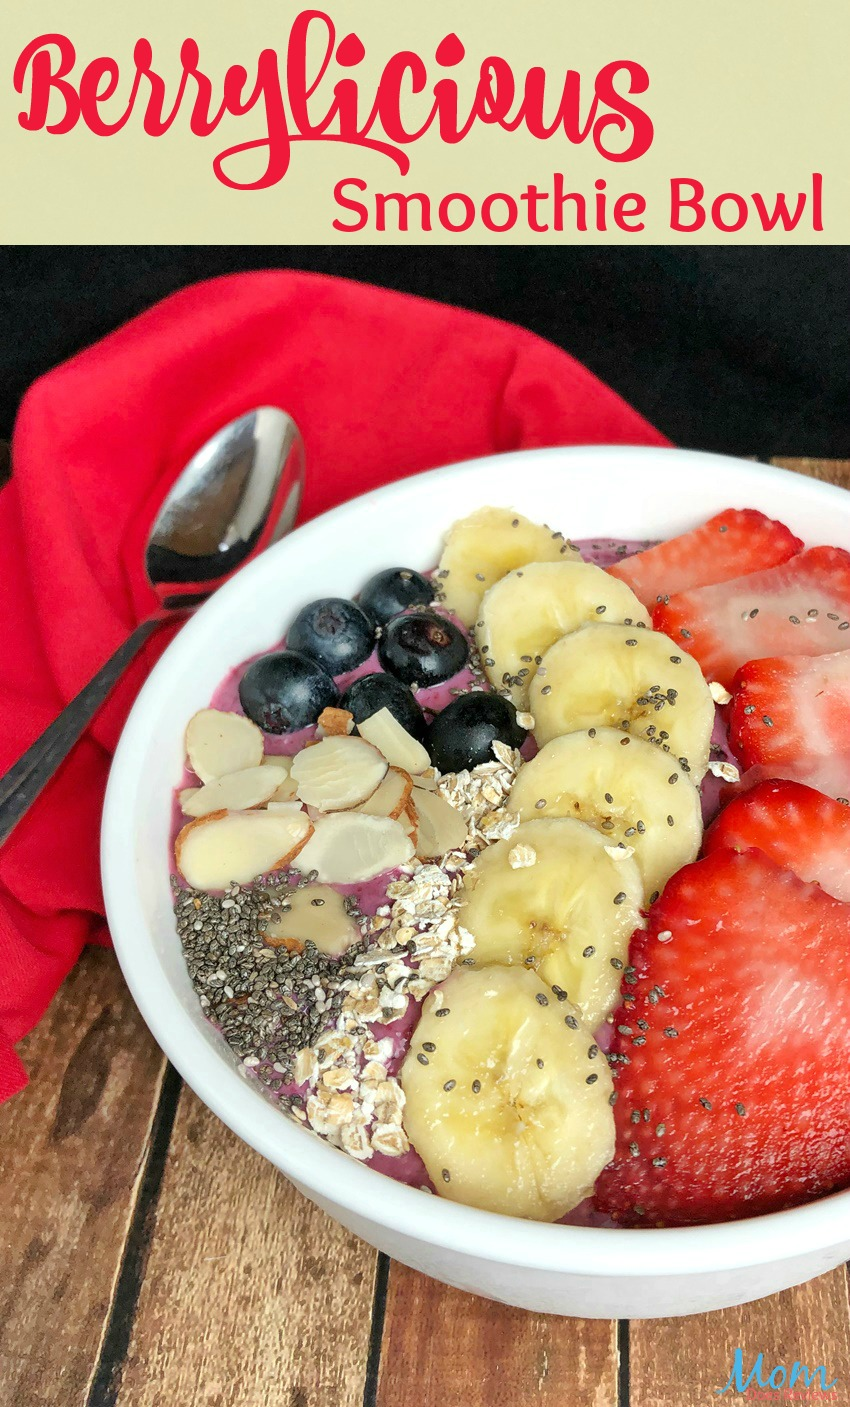 Berrylicious Smoothie Bowl Recipe: Easy, Quick and Satisfying! #recipe #food #foodie #breakfast #getinmybelly #yummy #strawberry #healthyfoods